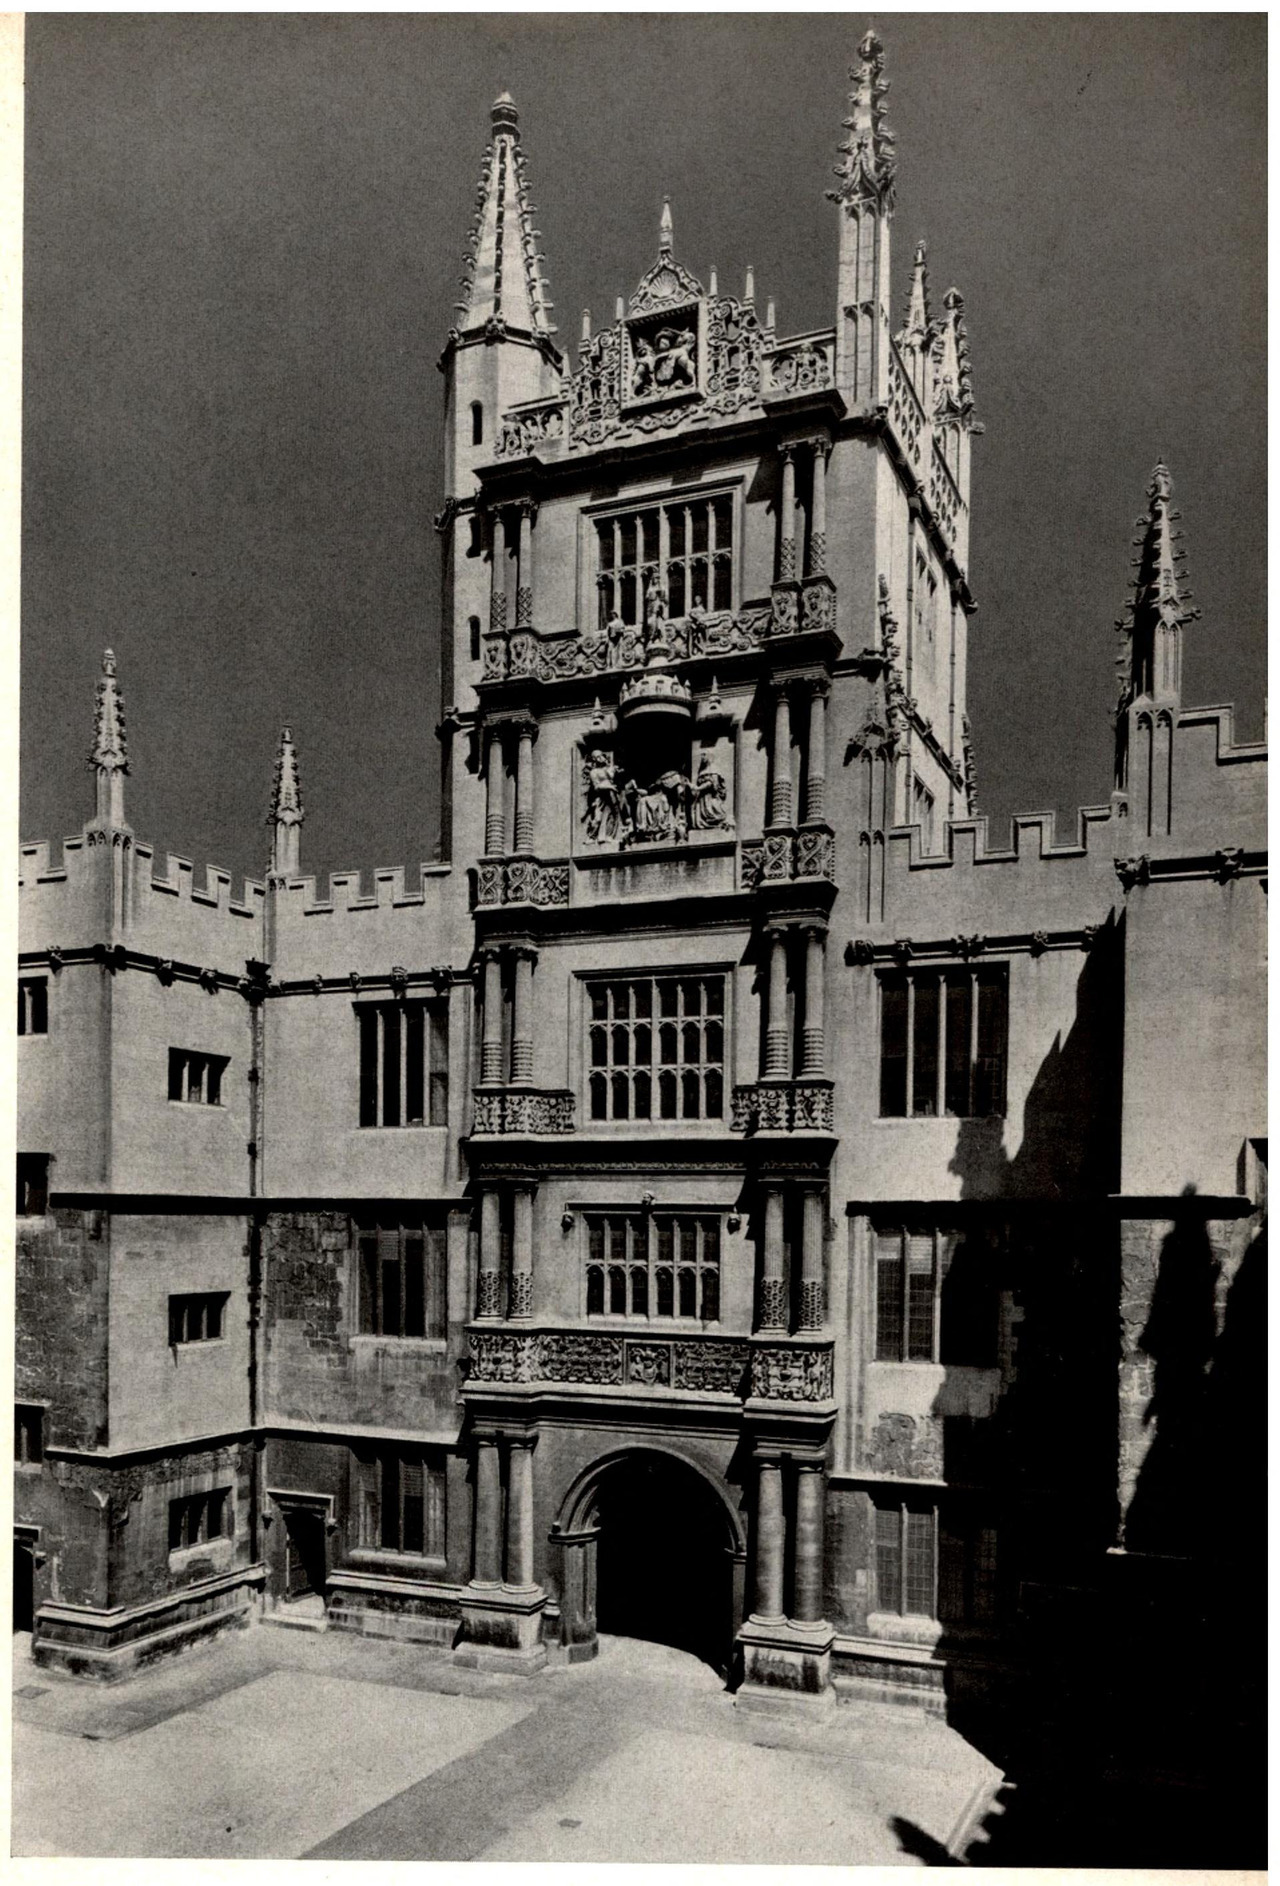 The Tower of the Five Orders at the Bodleian Library, Oxford